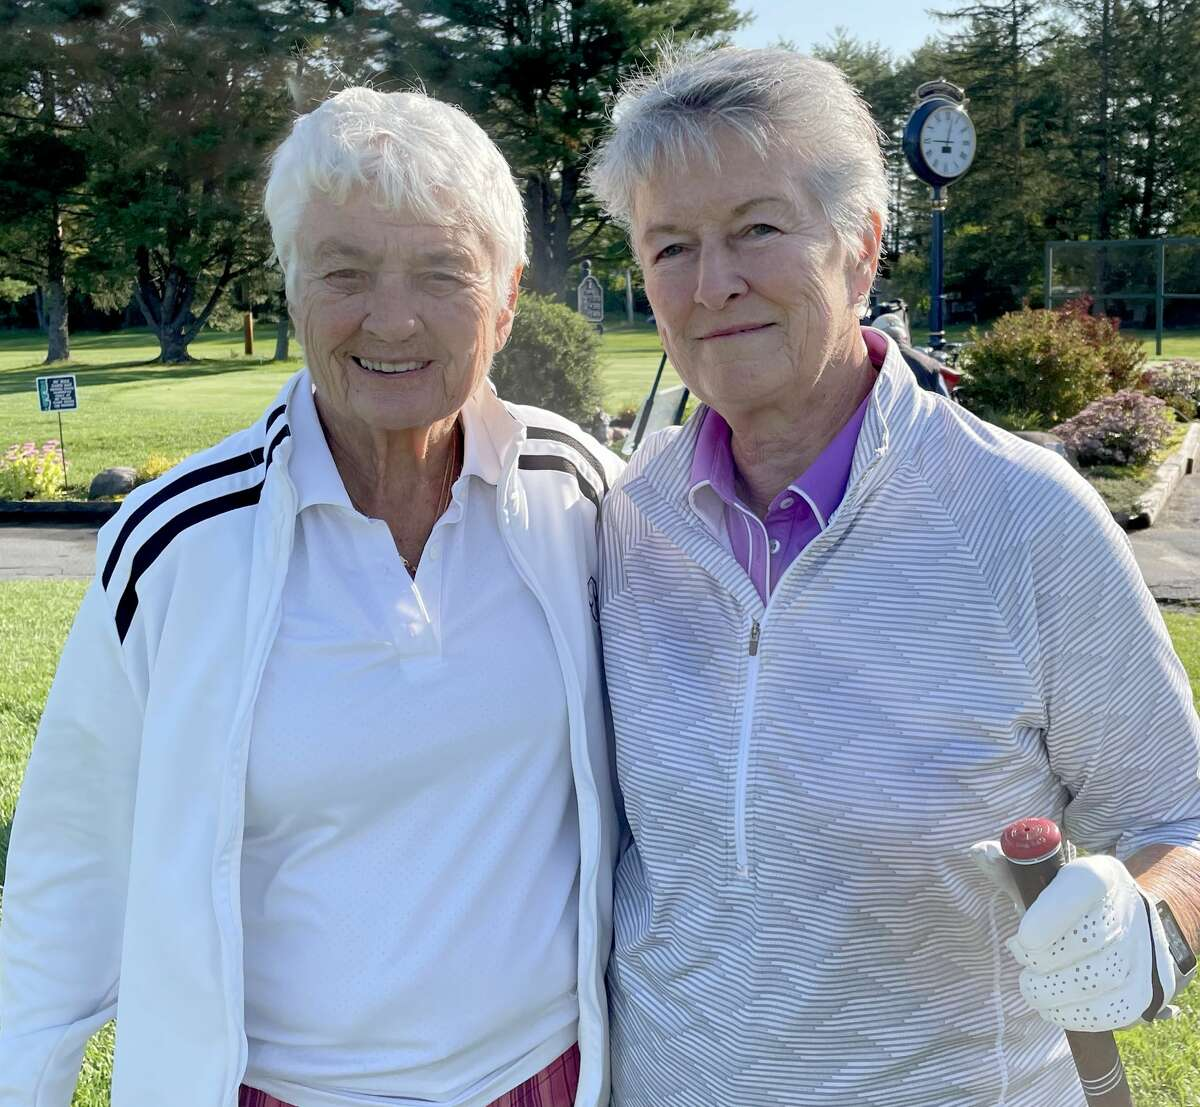 Jan Federice, left, and Pat Joseph wait to tee off in a tournament at Ballston Spa Country Club on Saturday, Sept. 4, 2021. Federice is being inducted into the New York State Girls' Soccer Hall of Fame on Sept. 11.